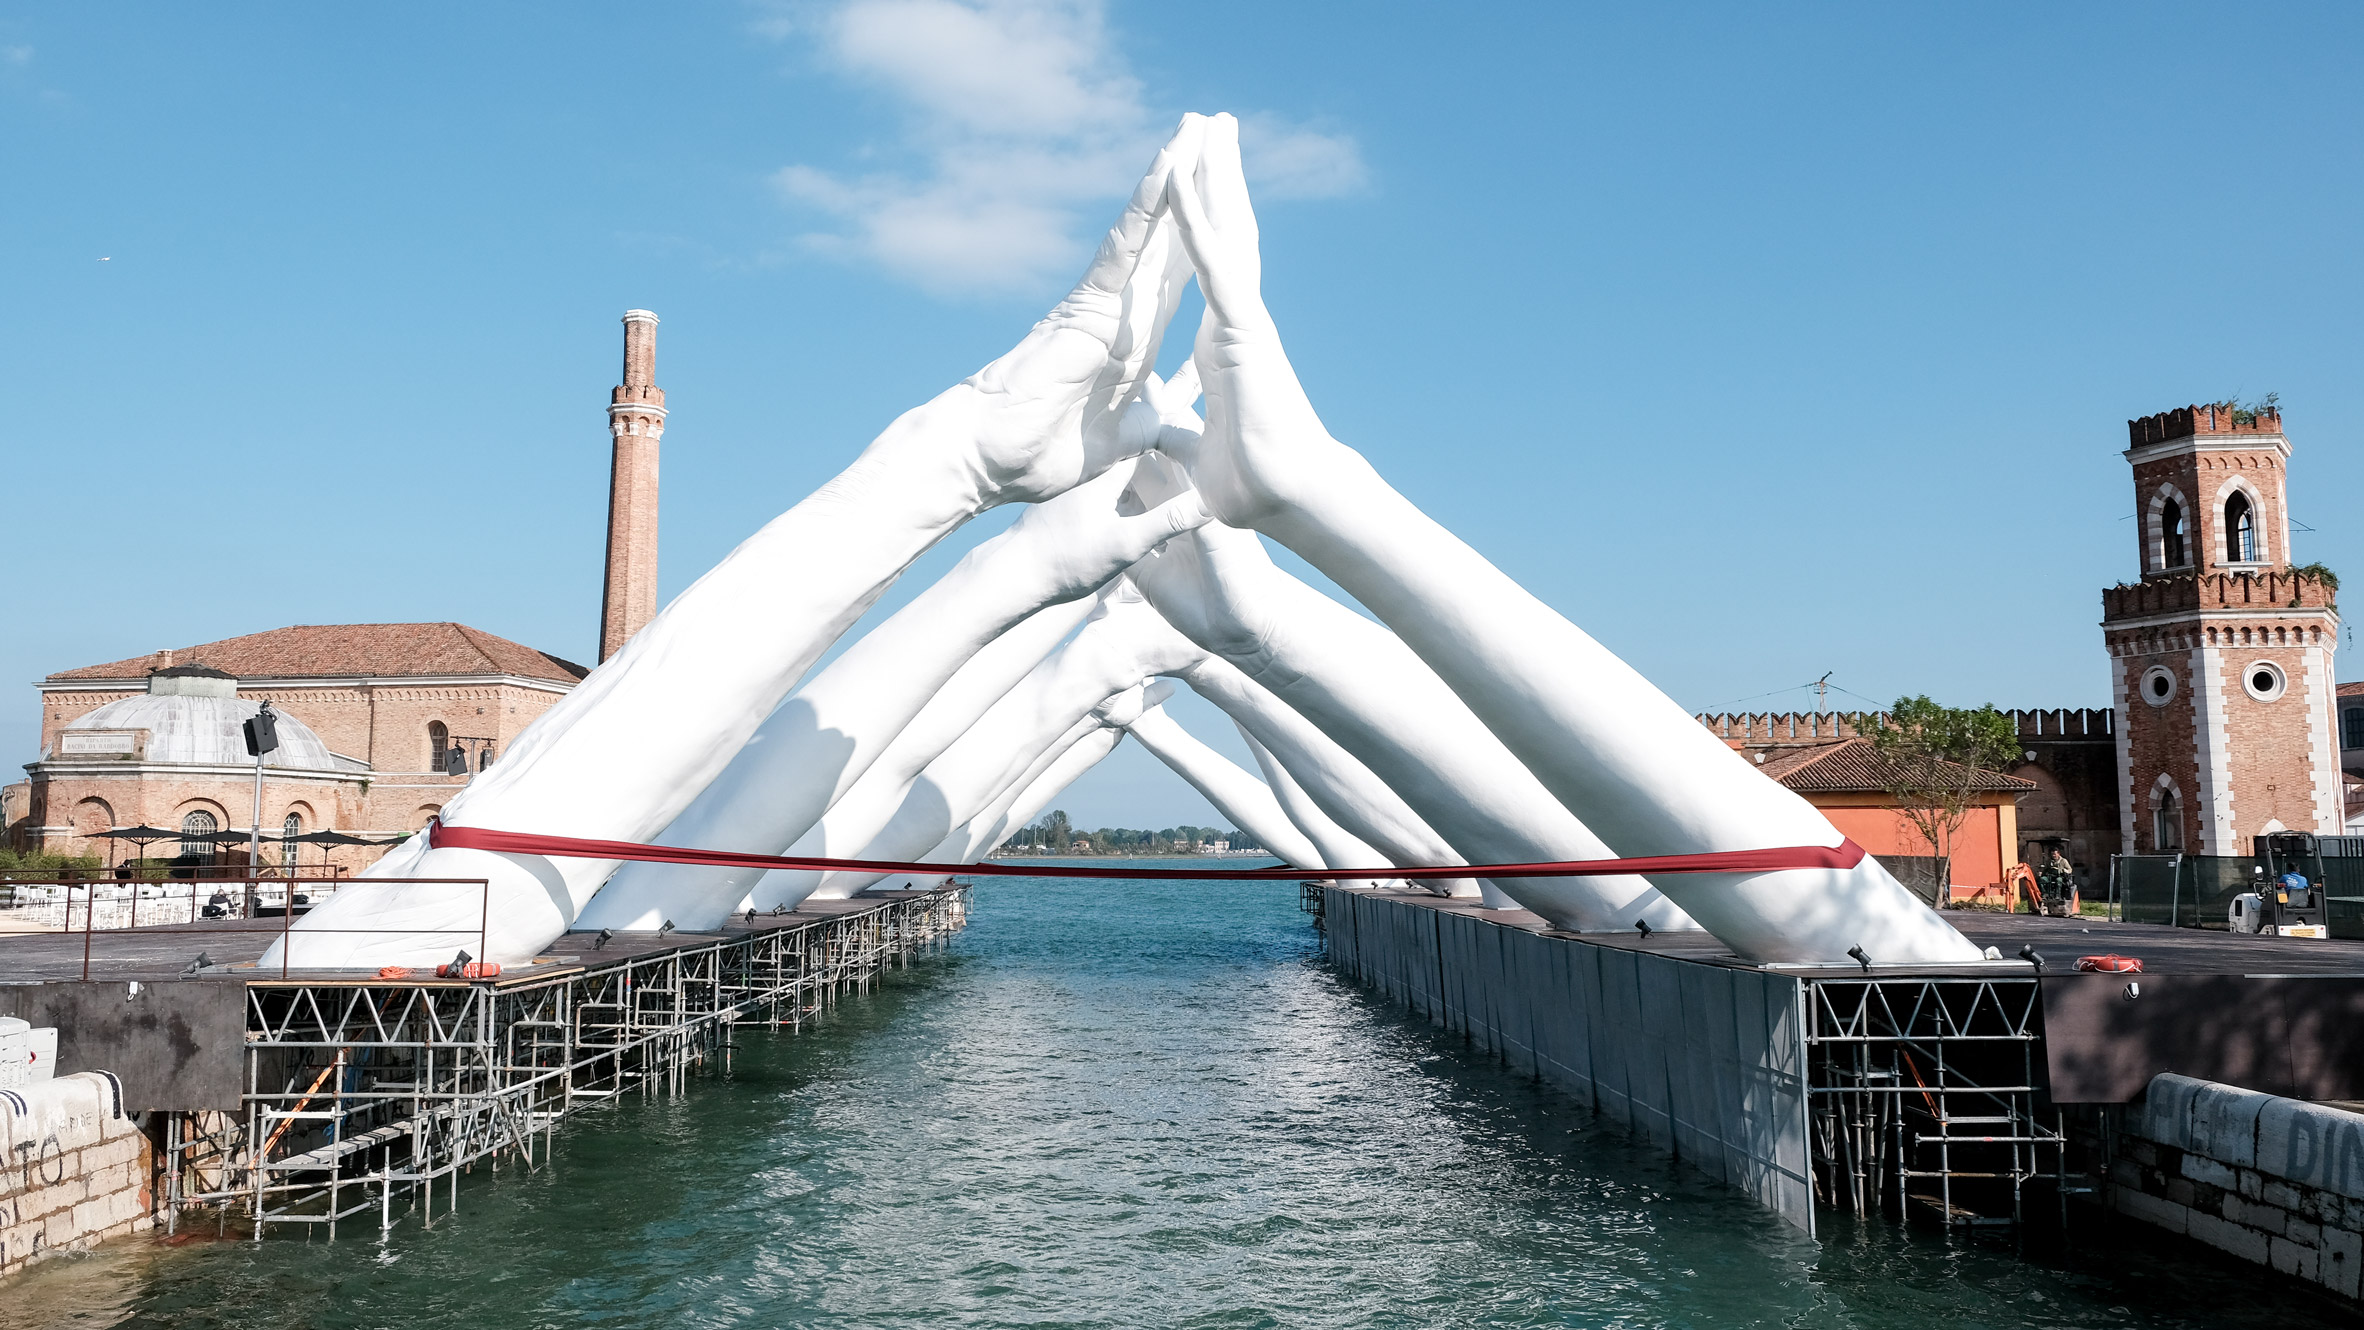 10 unmissable installations and exhibitions at the Venice Art Biennale 2019